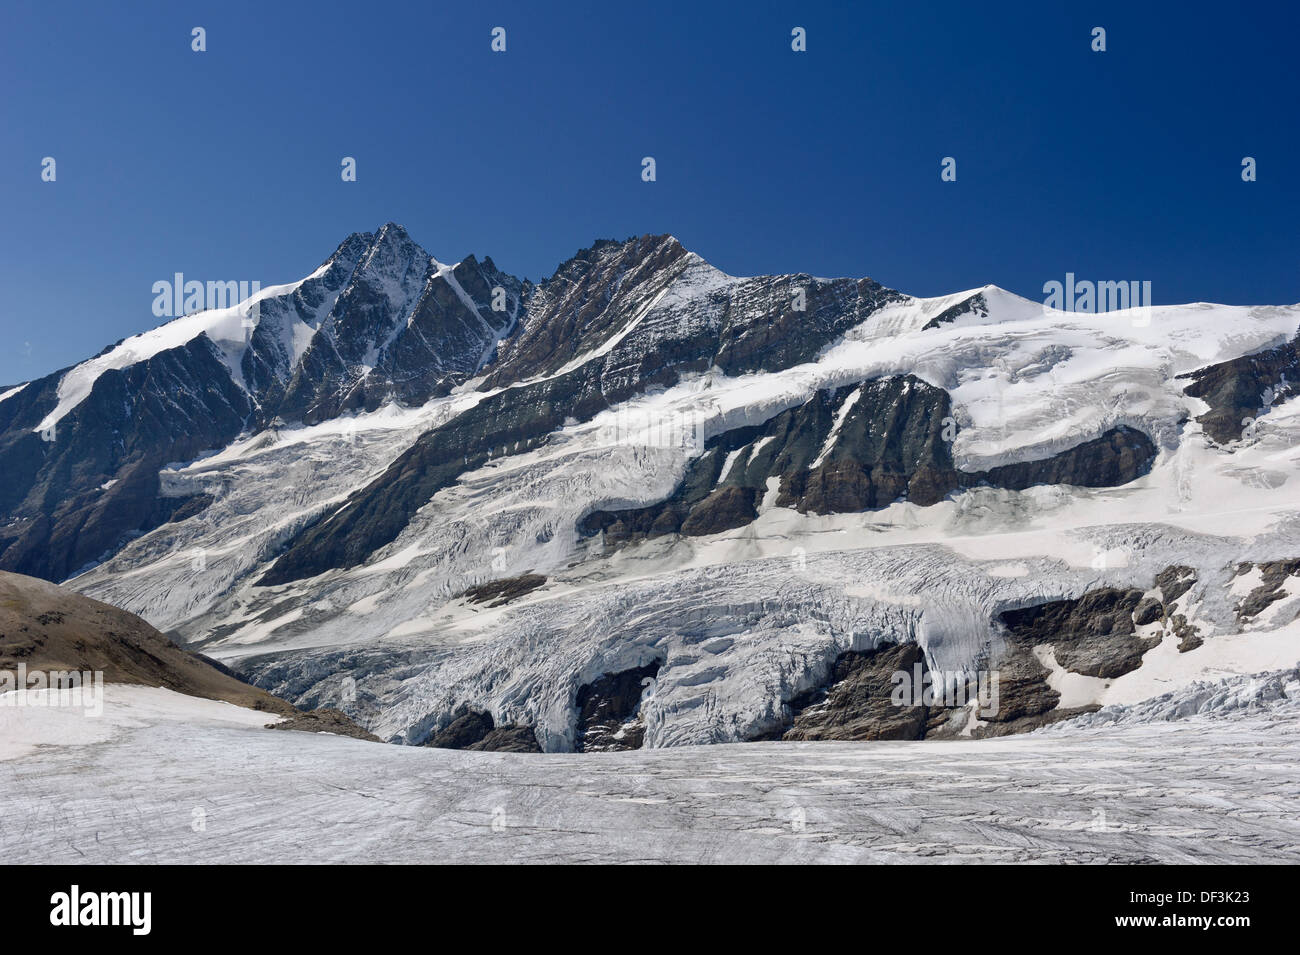 Austria / Hohe Tauern National Park - Impacts of climate change: Mount Grossglockner towering above melting Pasterze glacier. - Stock Image